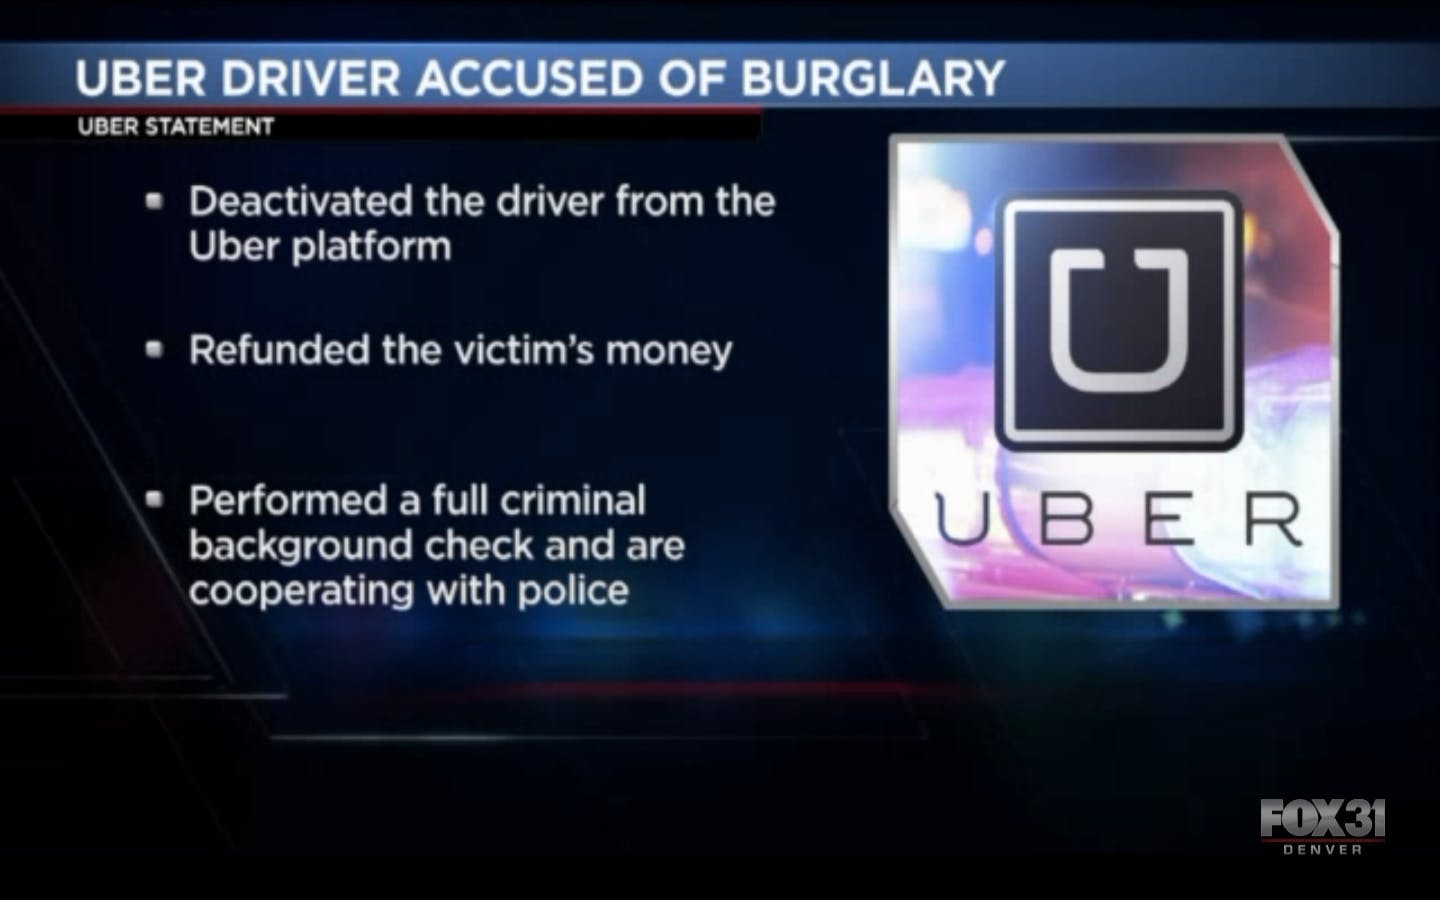 Uber swung into action as soon as it realized something was wrong.